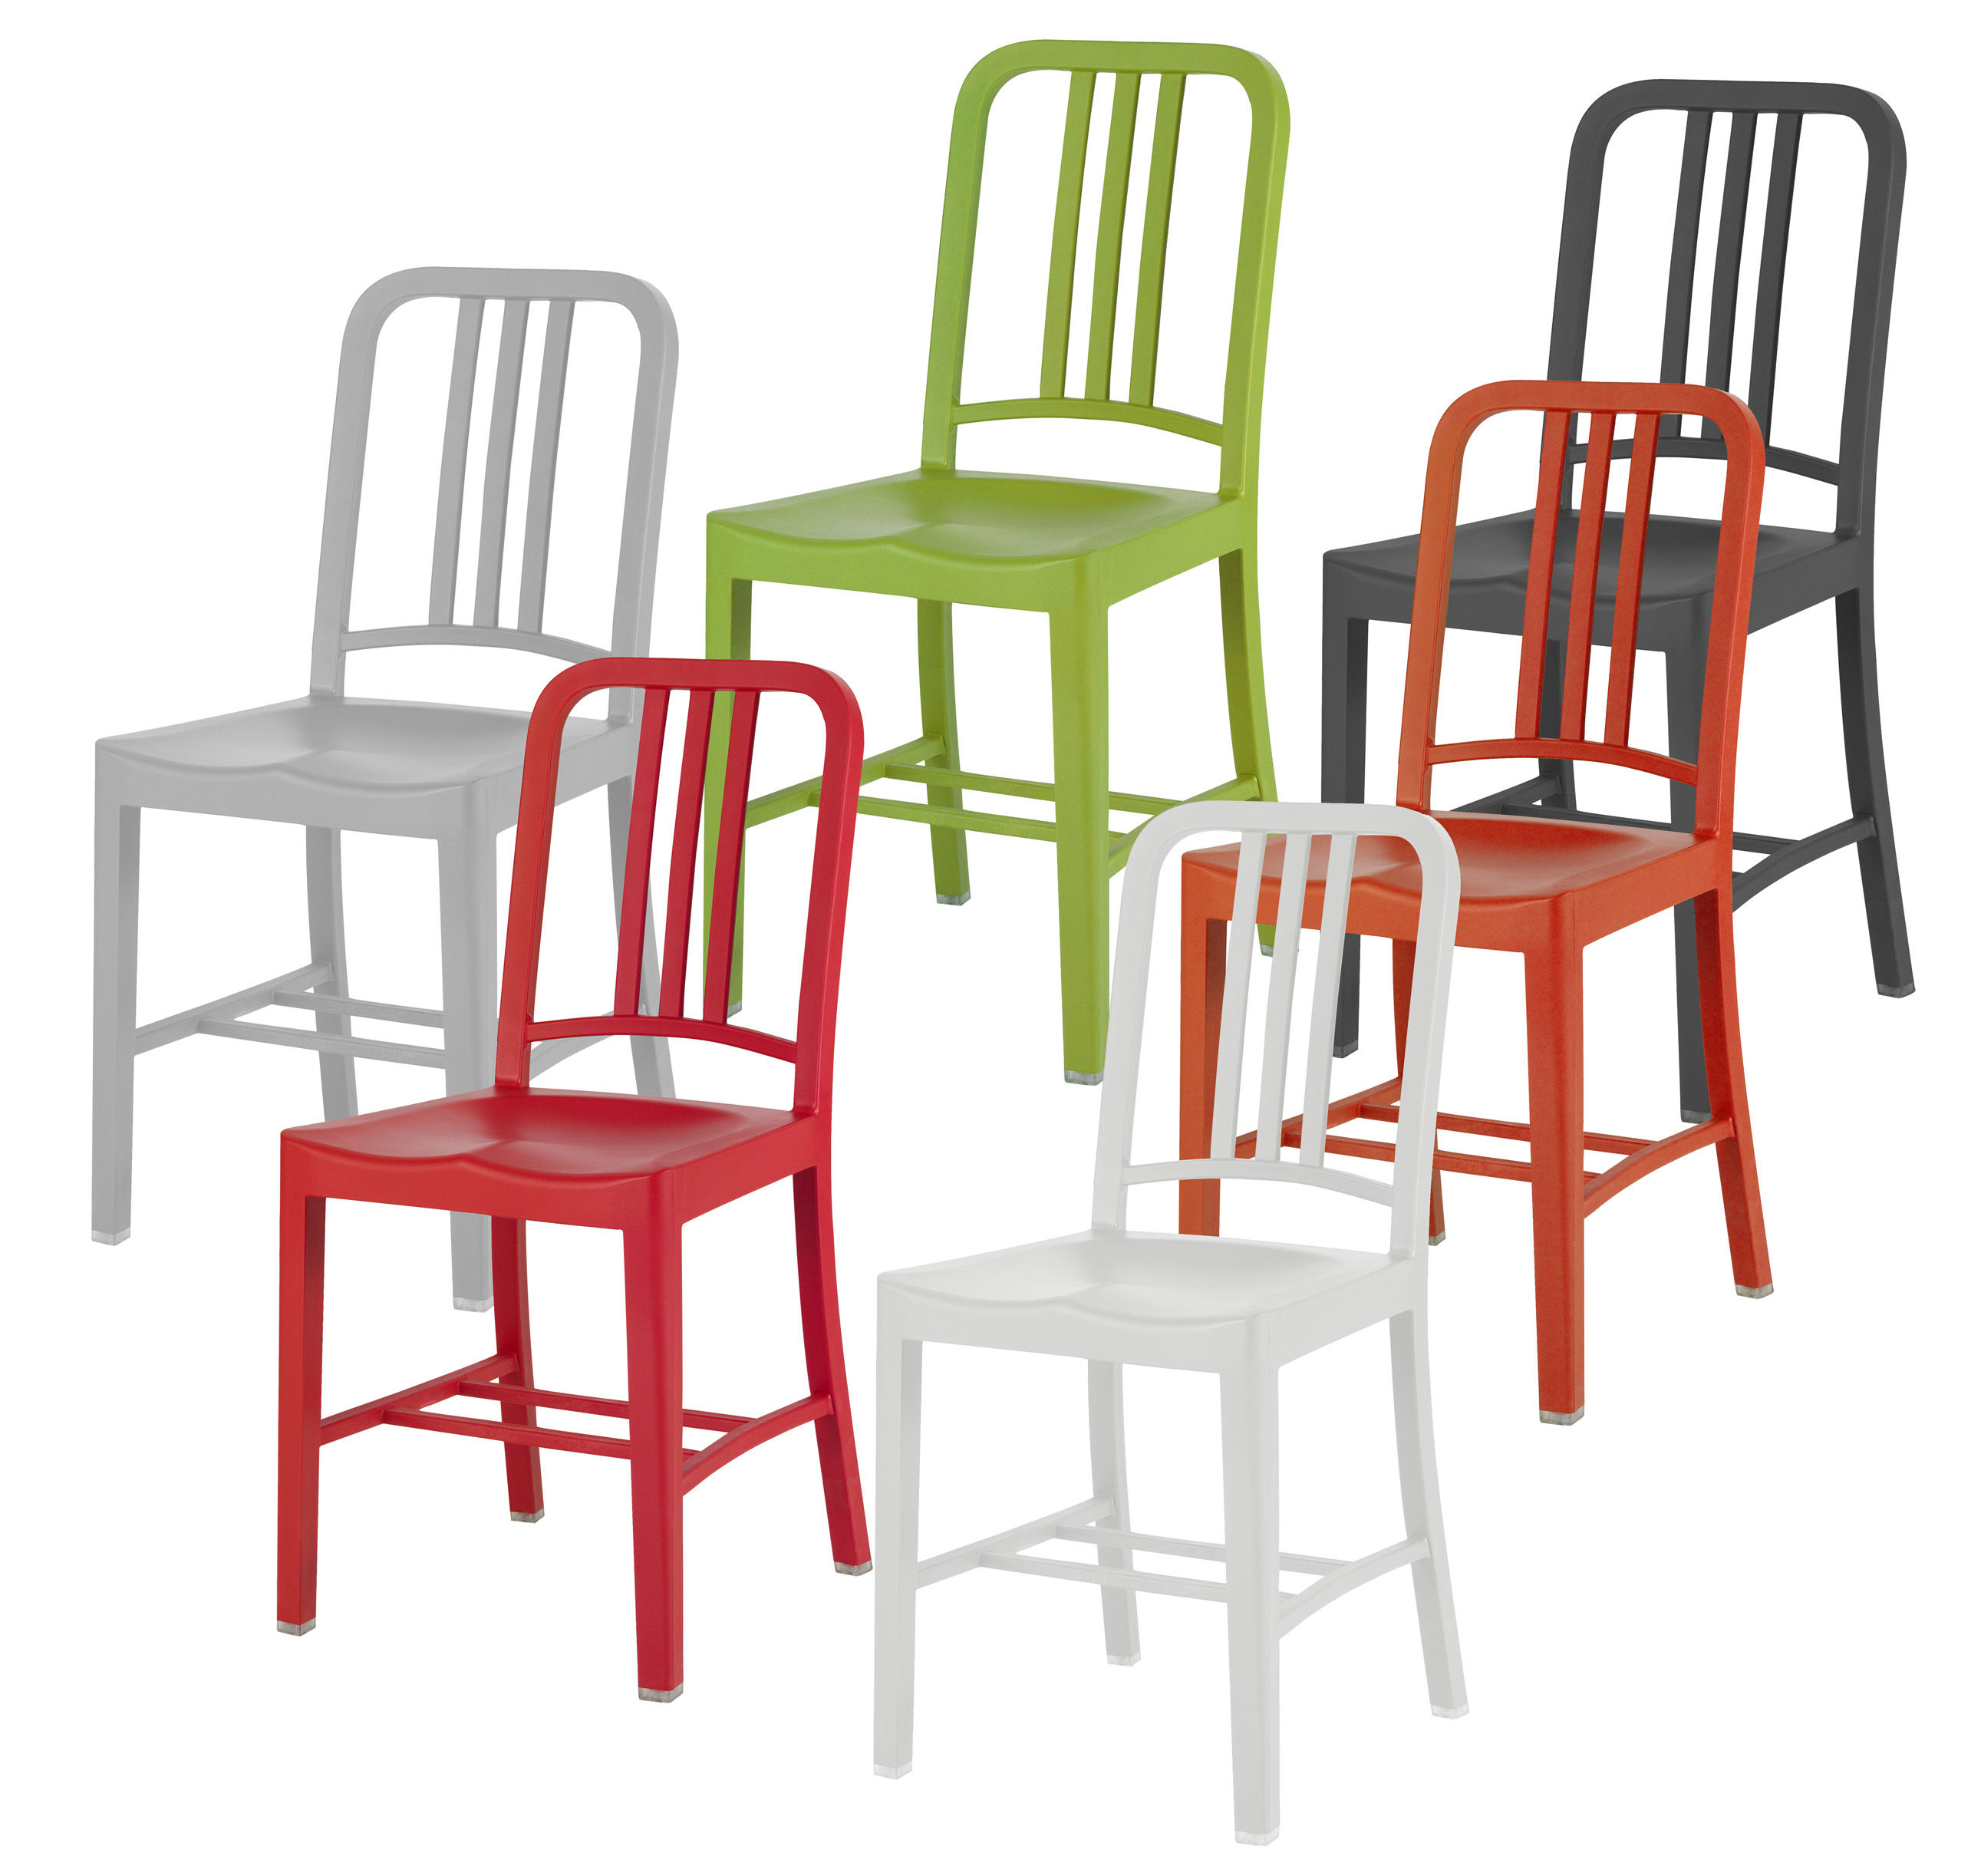 pp chair company best occasional chairs 111 navy outdoor recycled plastic red by emeco